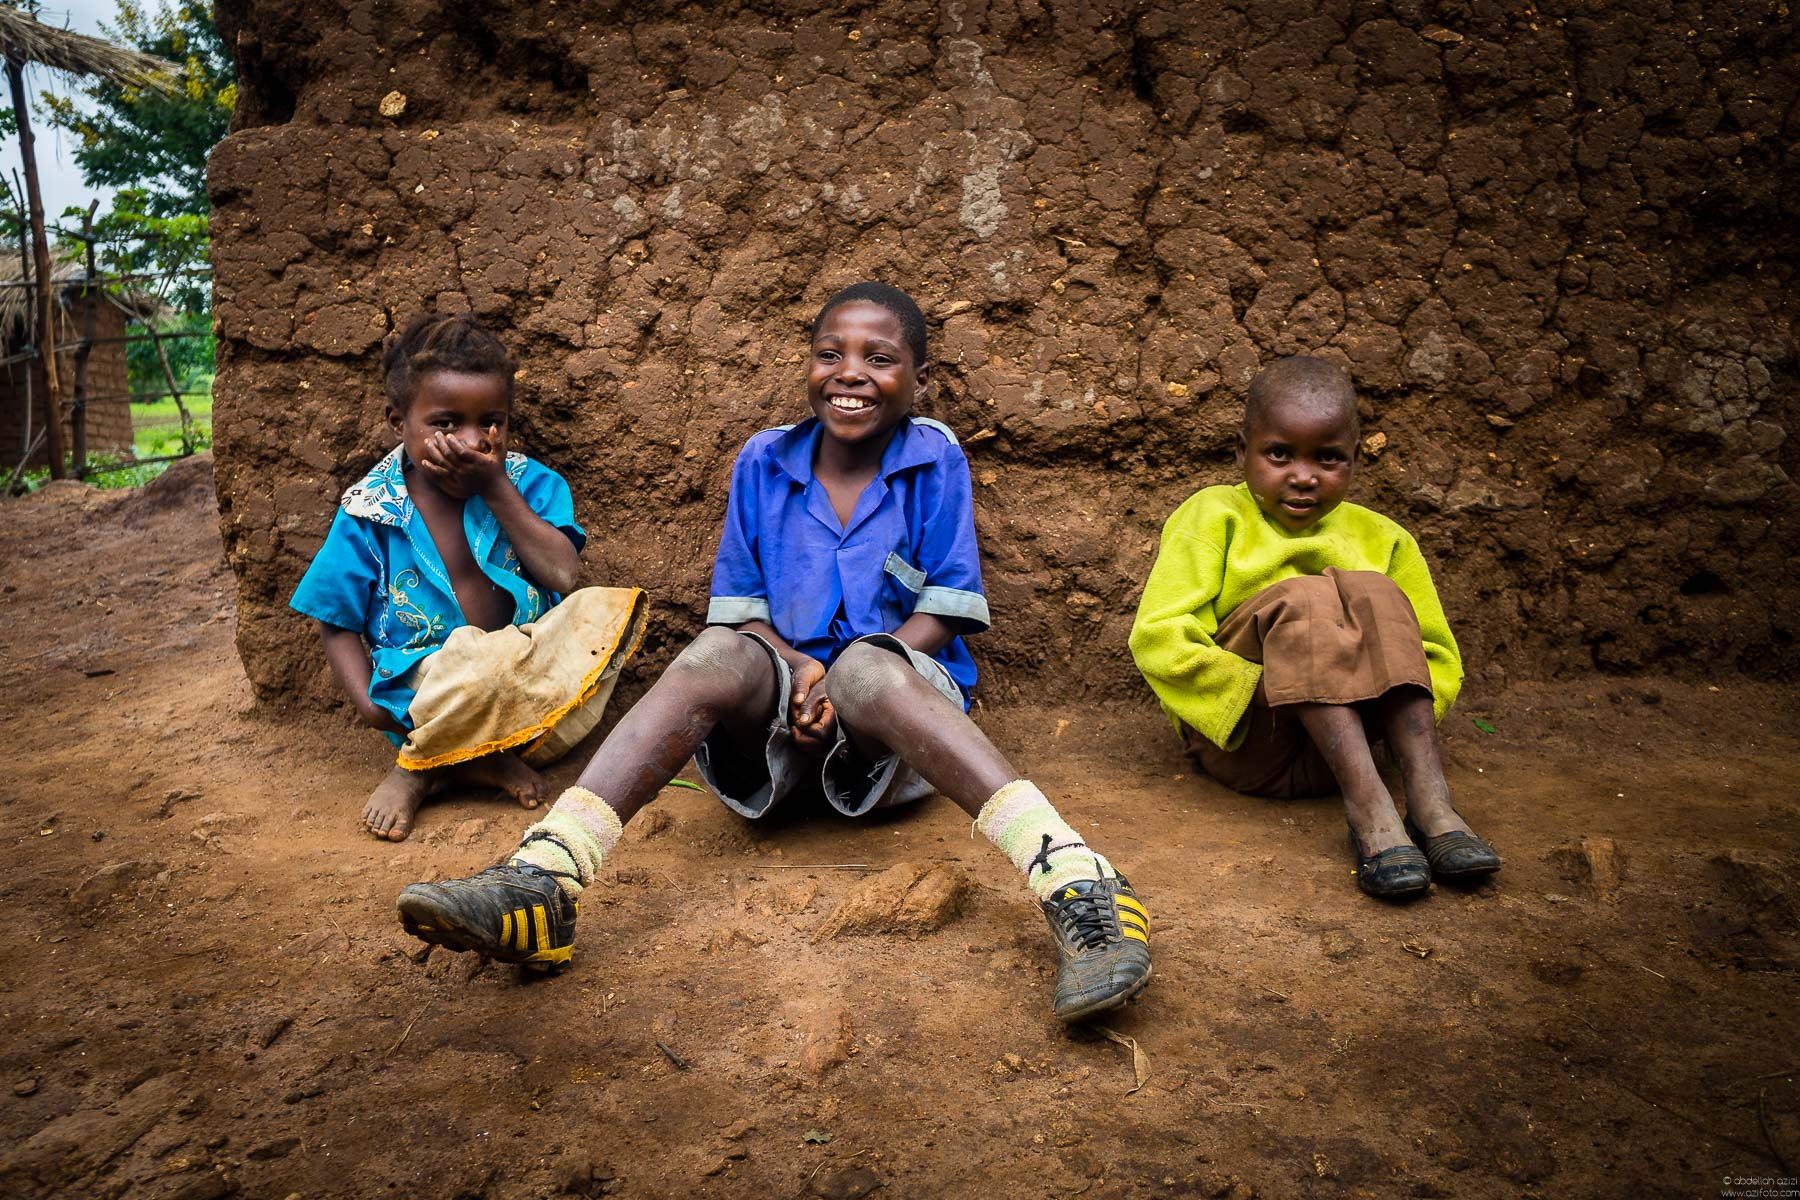 Boys and a girl, in Malawi